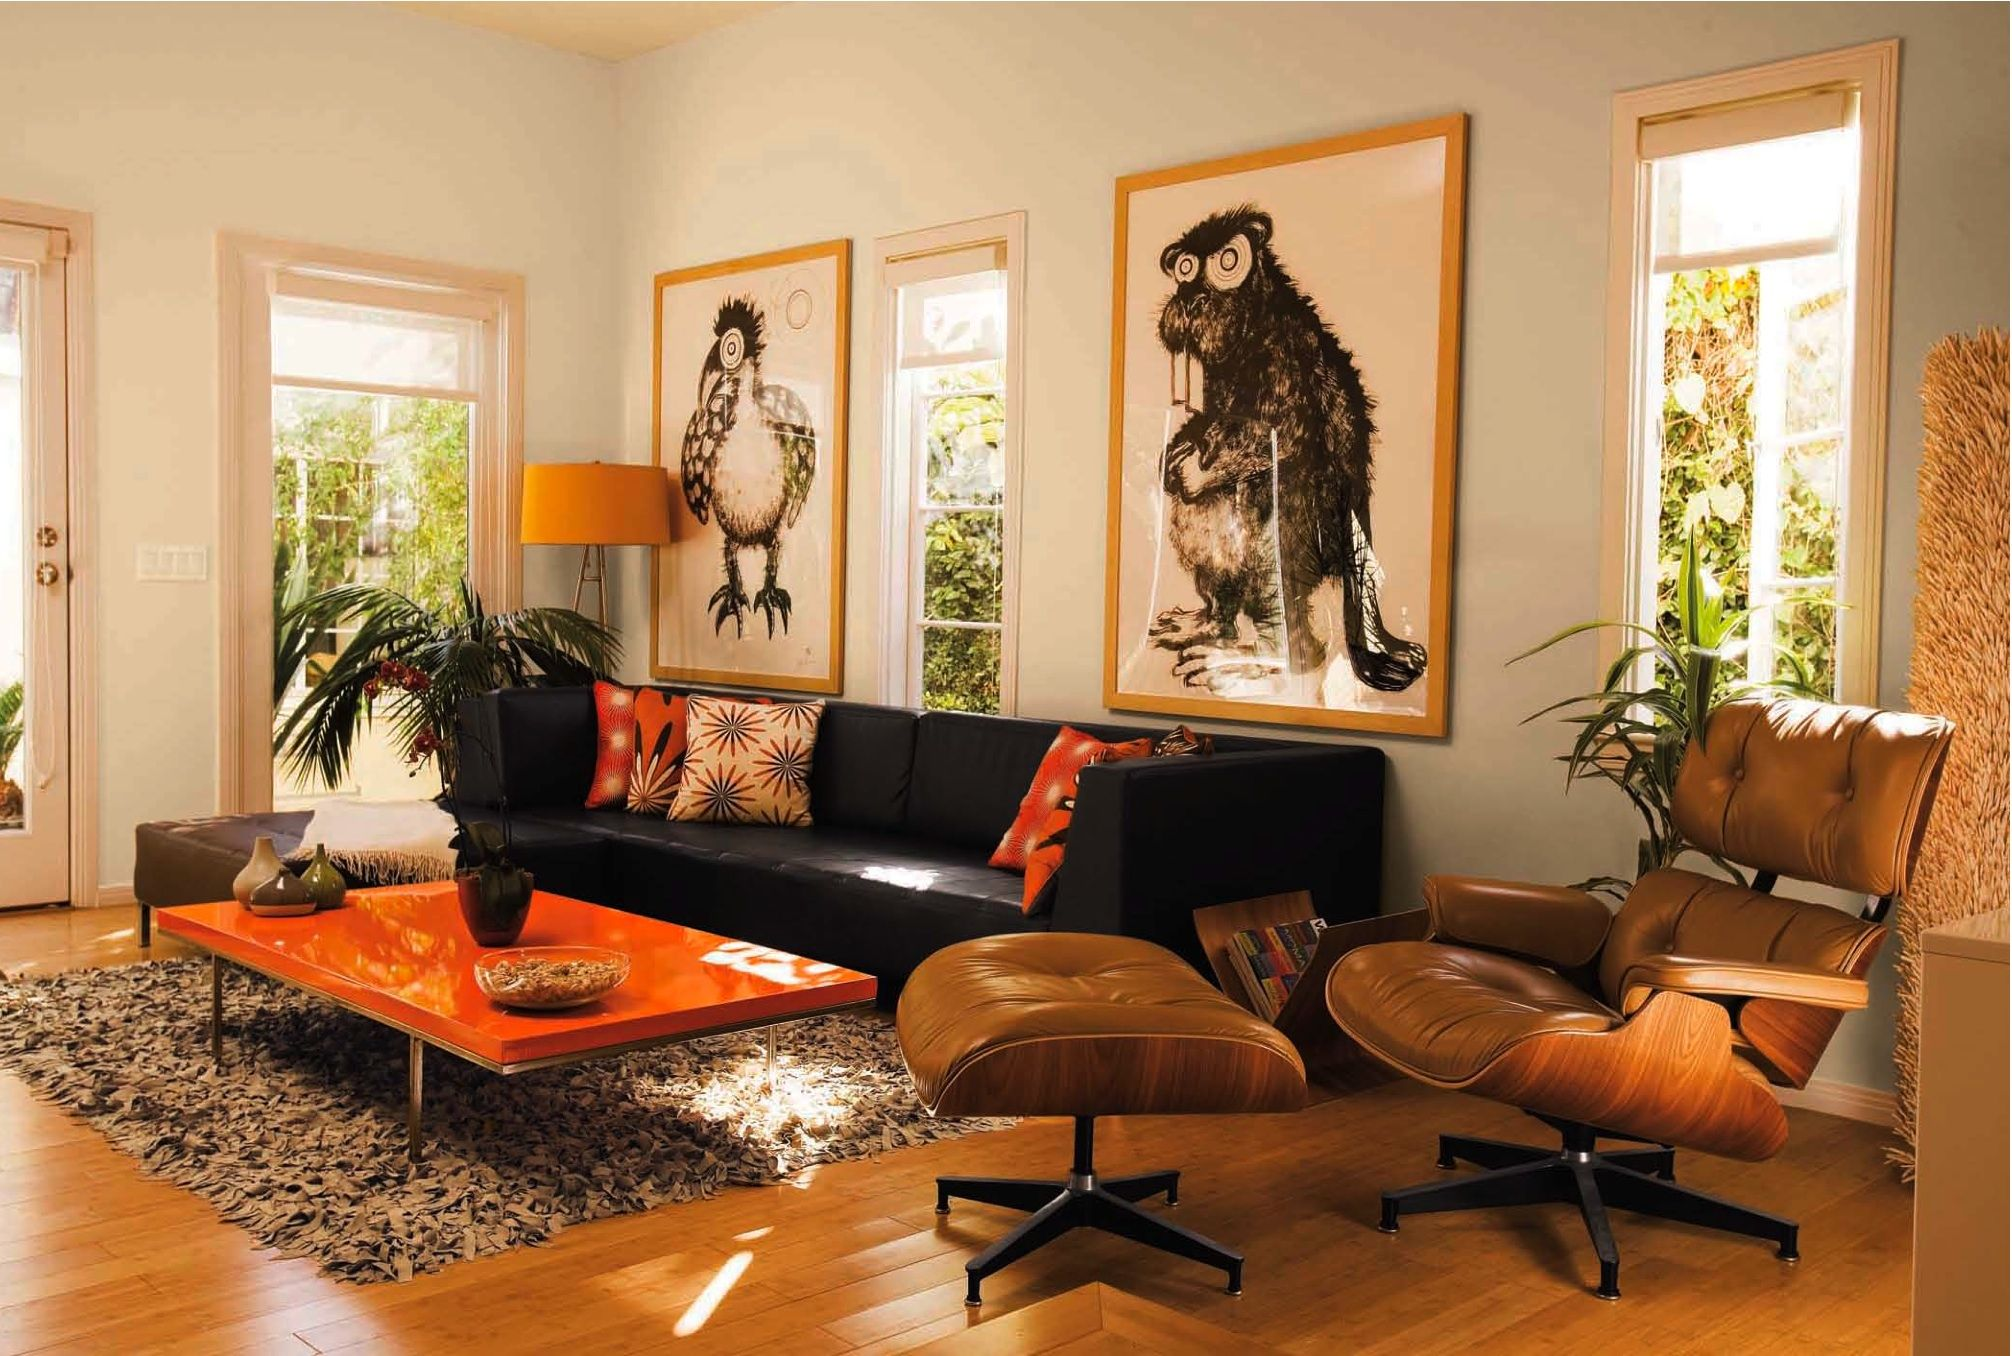 Traditional Living Room With Black Sofa dark brown couch, orange accents, side chair and ottaman, lamp and